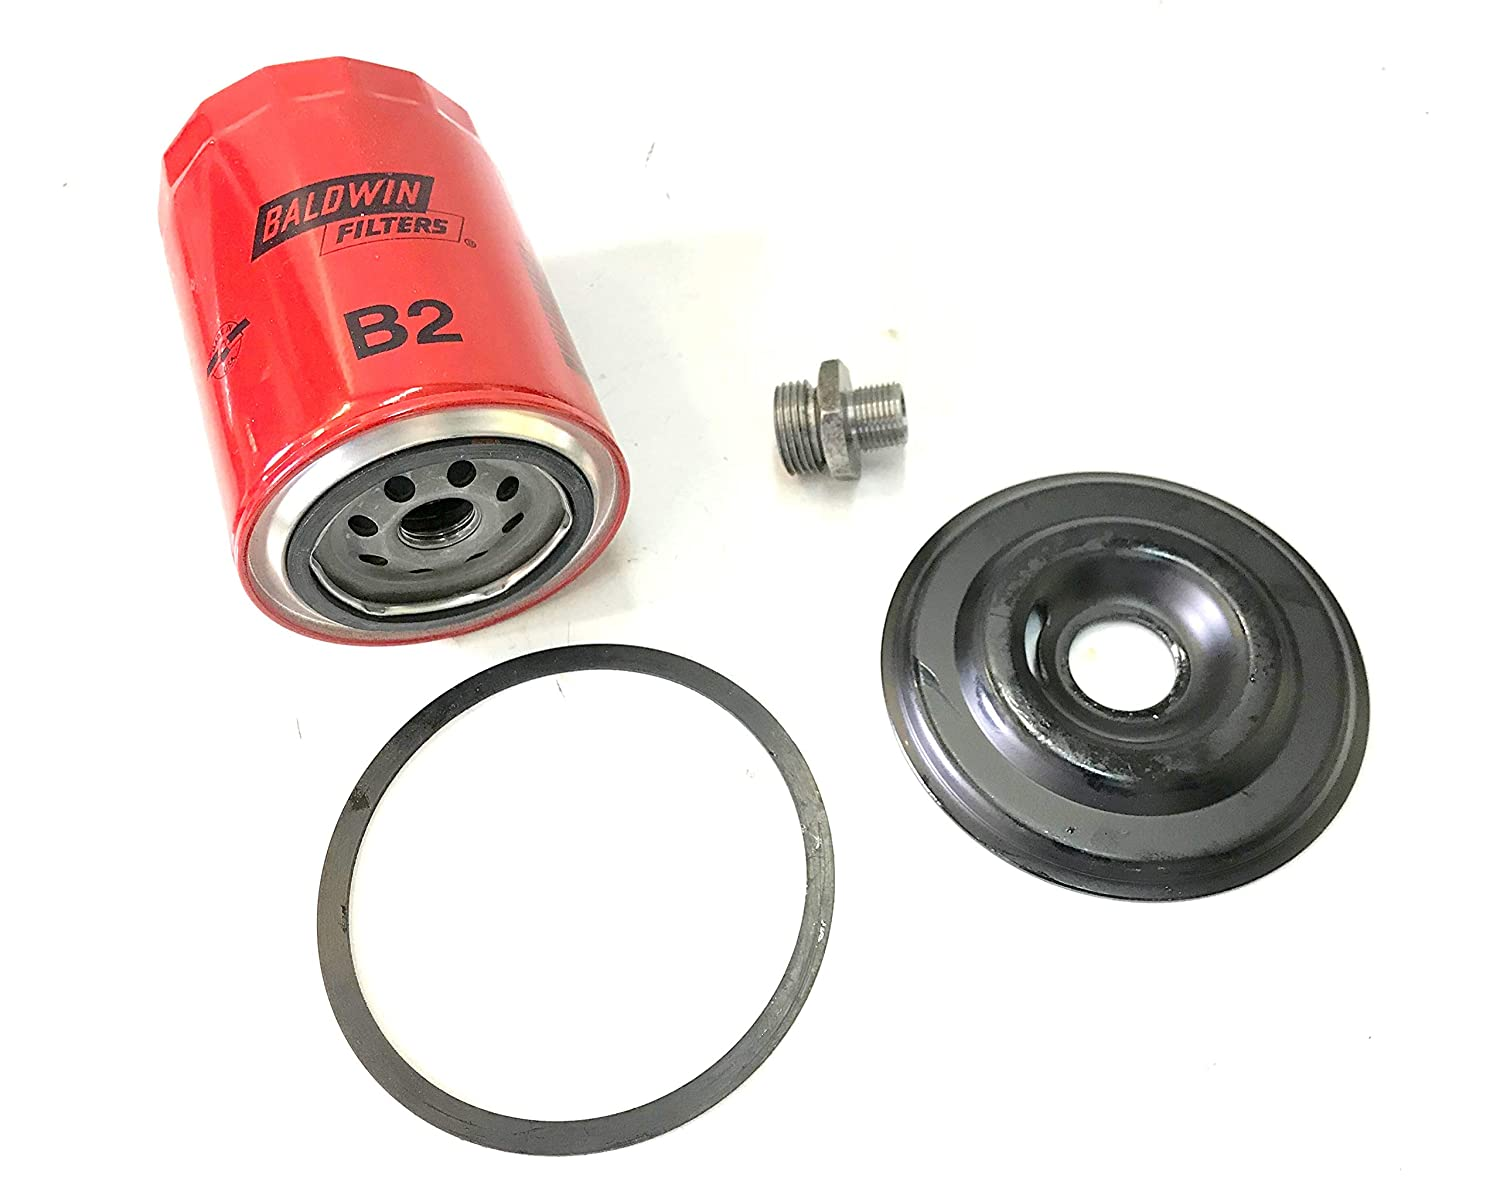 FORD OIL FILTER ADAPTER USED